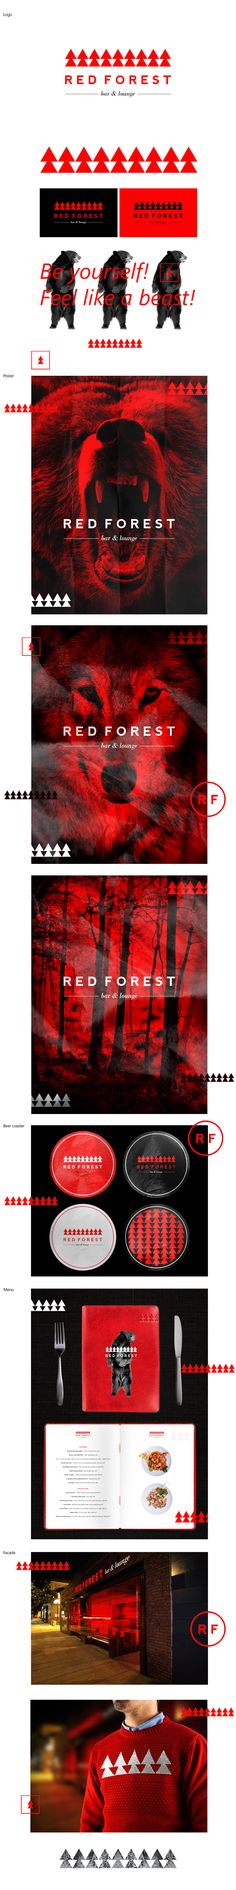 RED FOREST, Identity © Berik Yergaliyev. Not 100% onboard with all of this but some lovely stuff also.